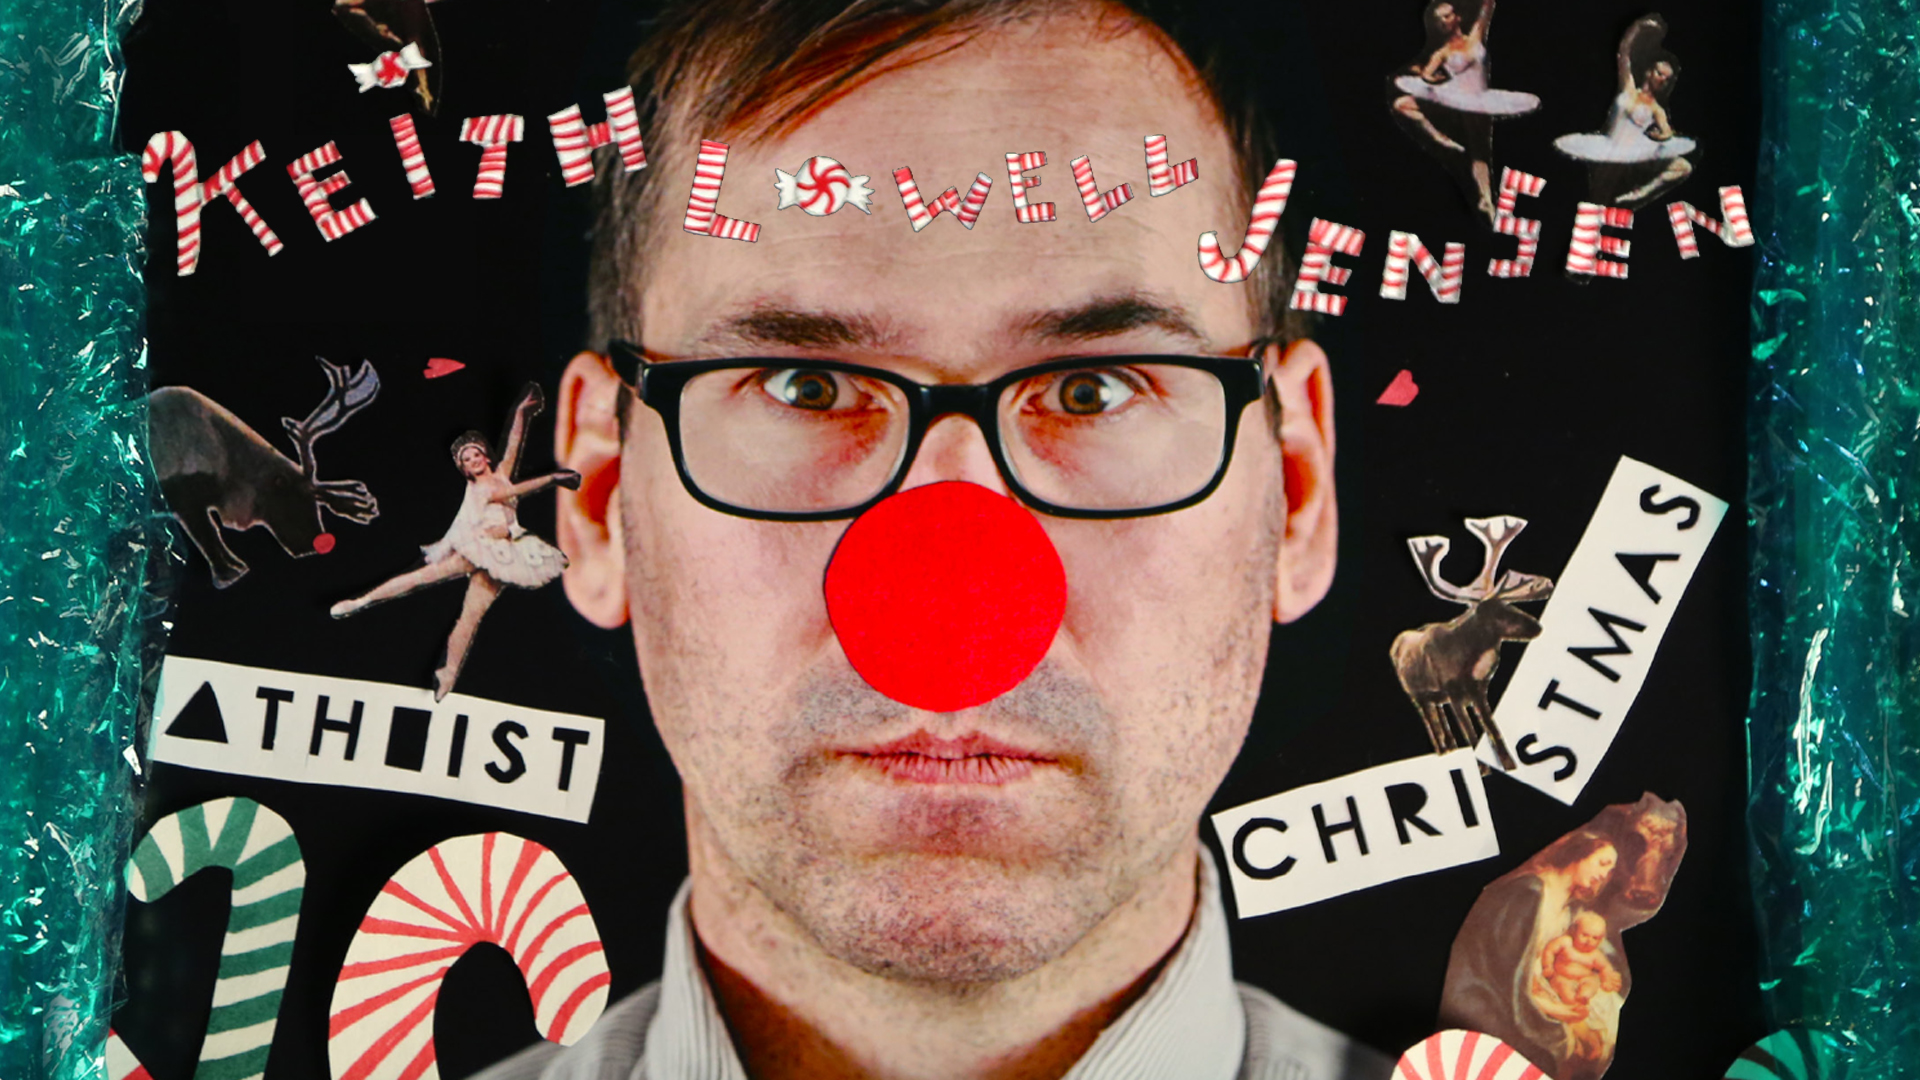 Keith Lowell Jensen: Atheist Christmas